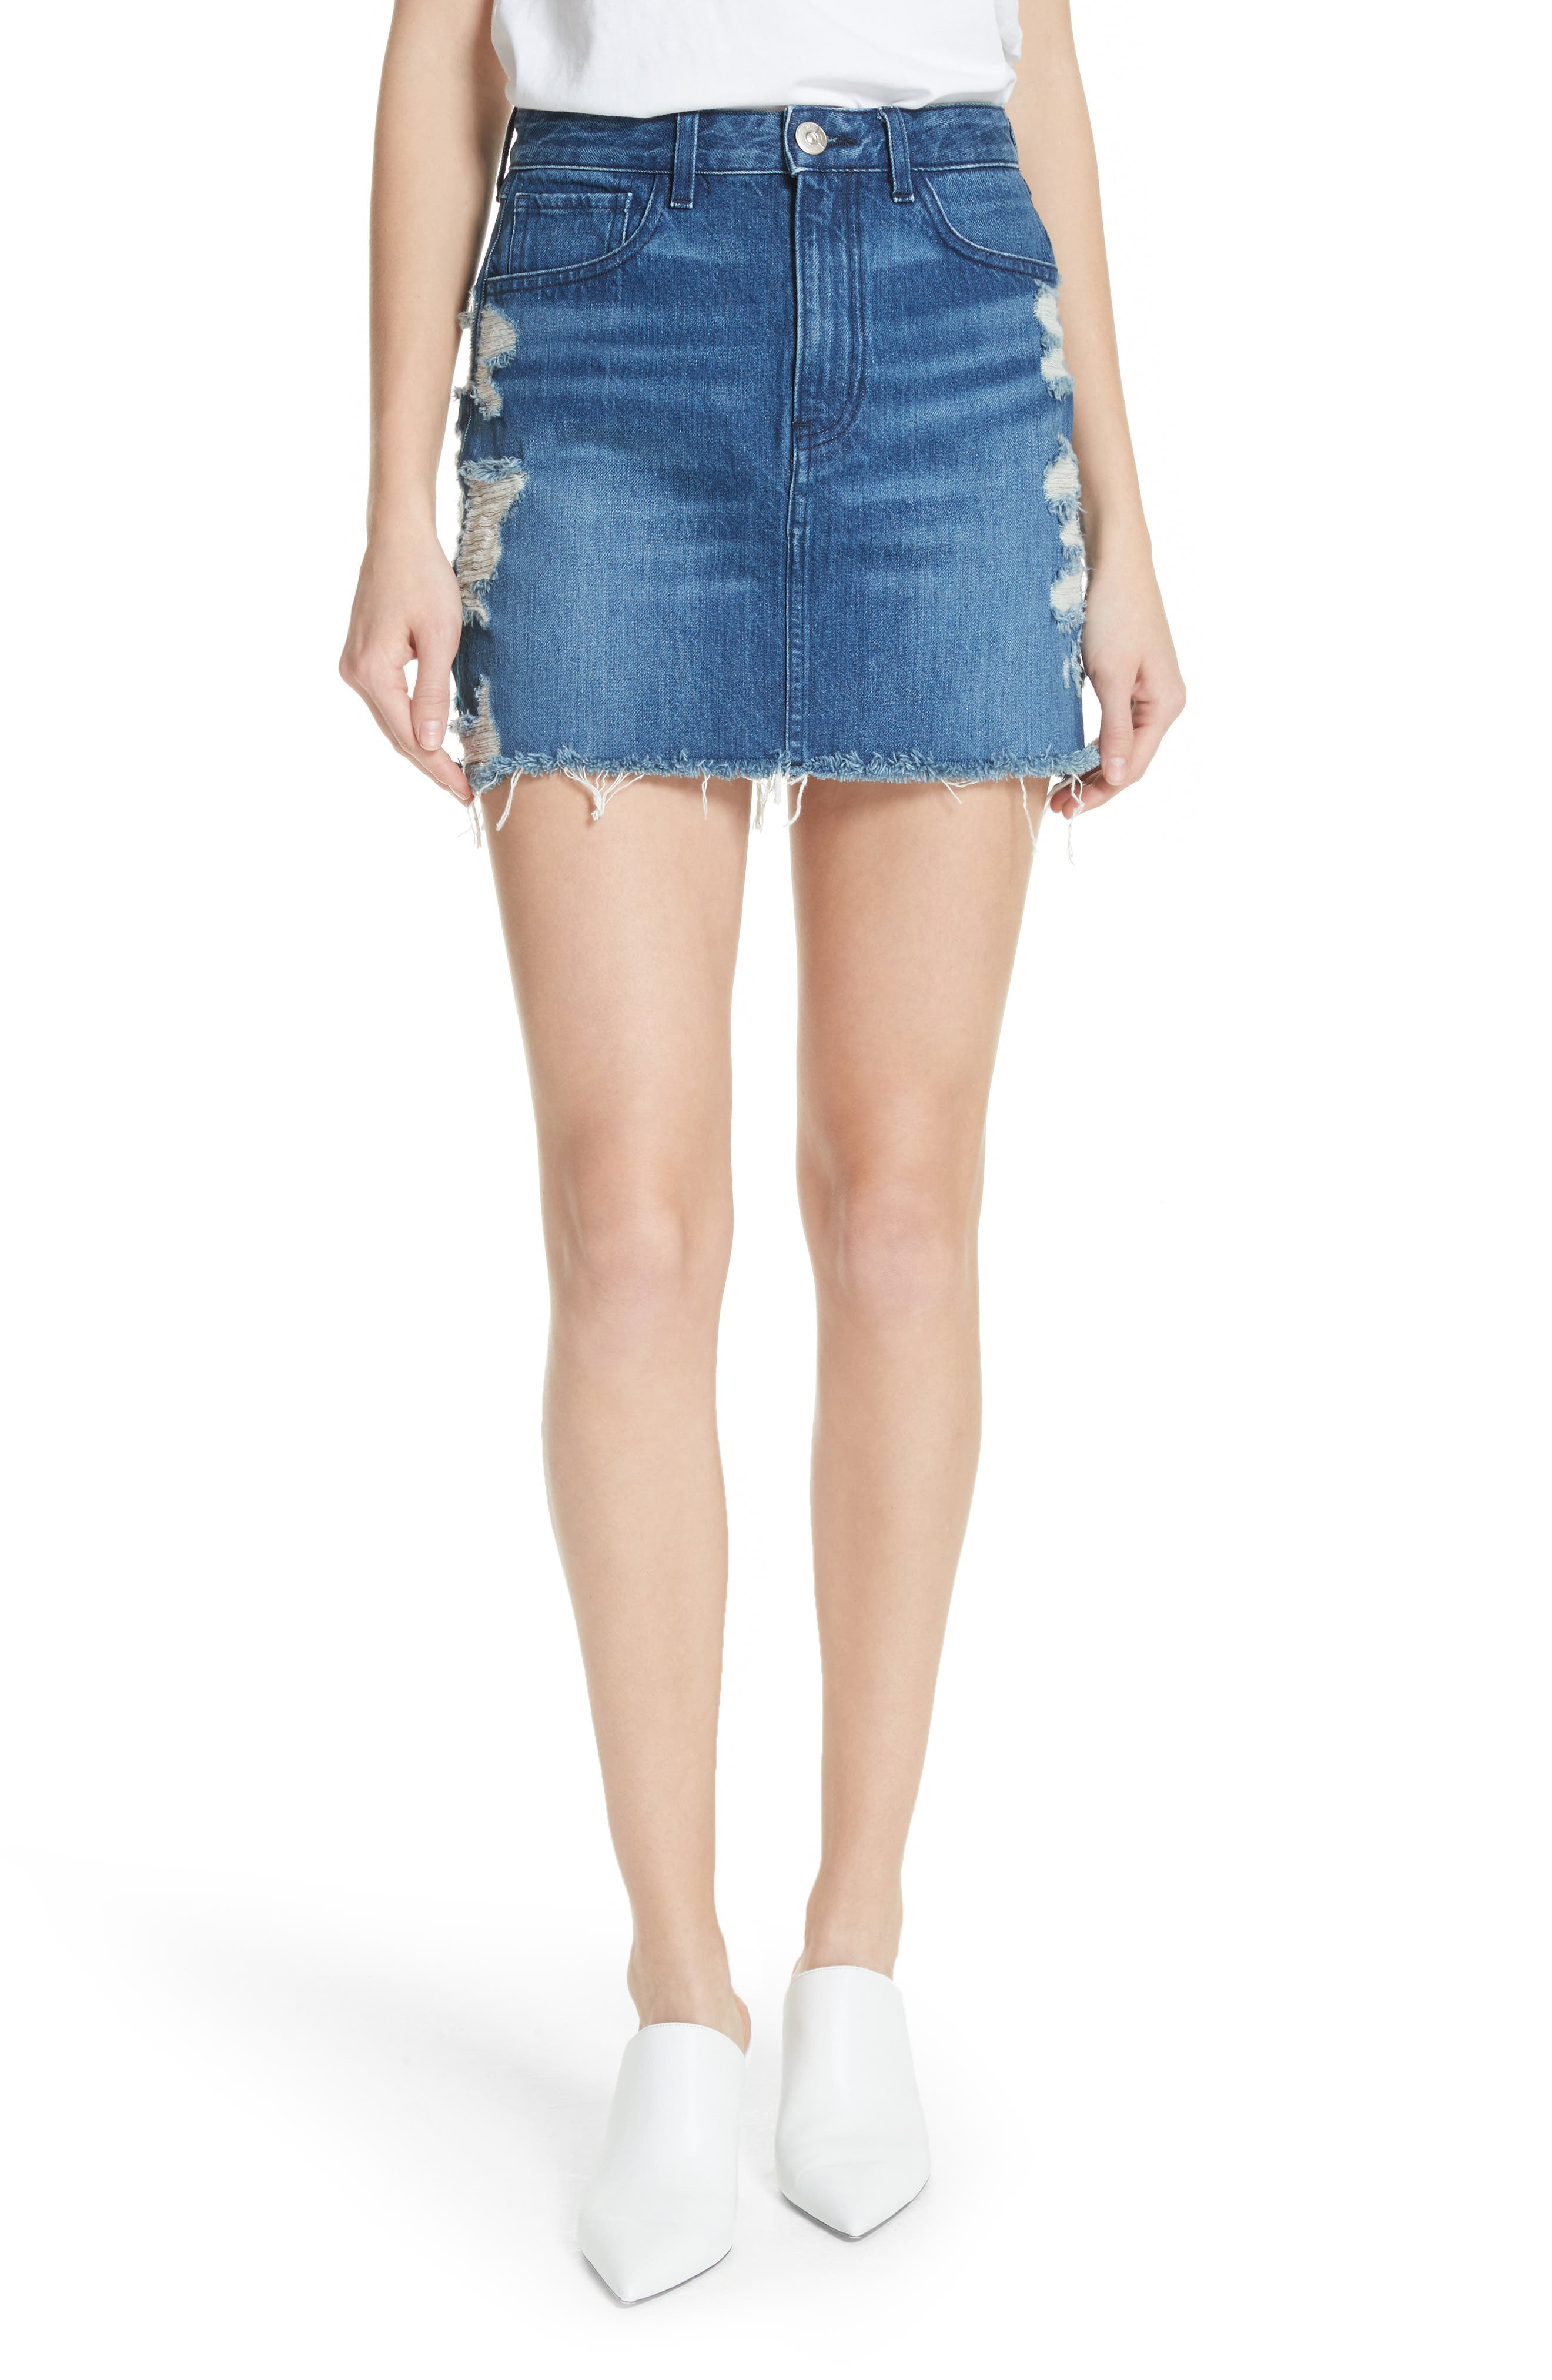 Celine Distressed Denim Skirt,                             Main thumbnail 1, color,                             404